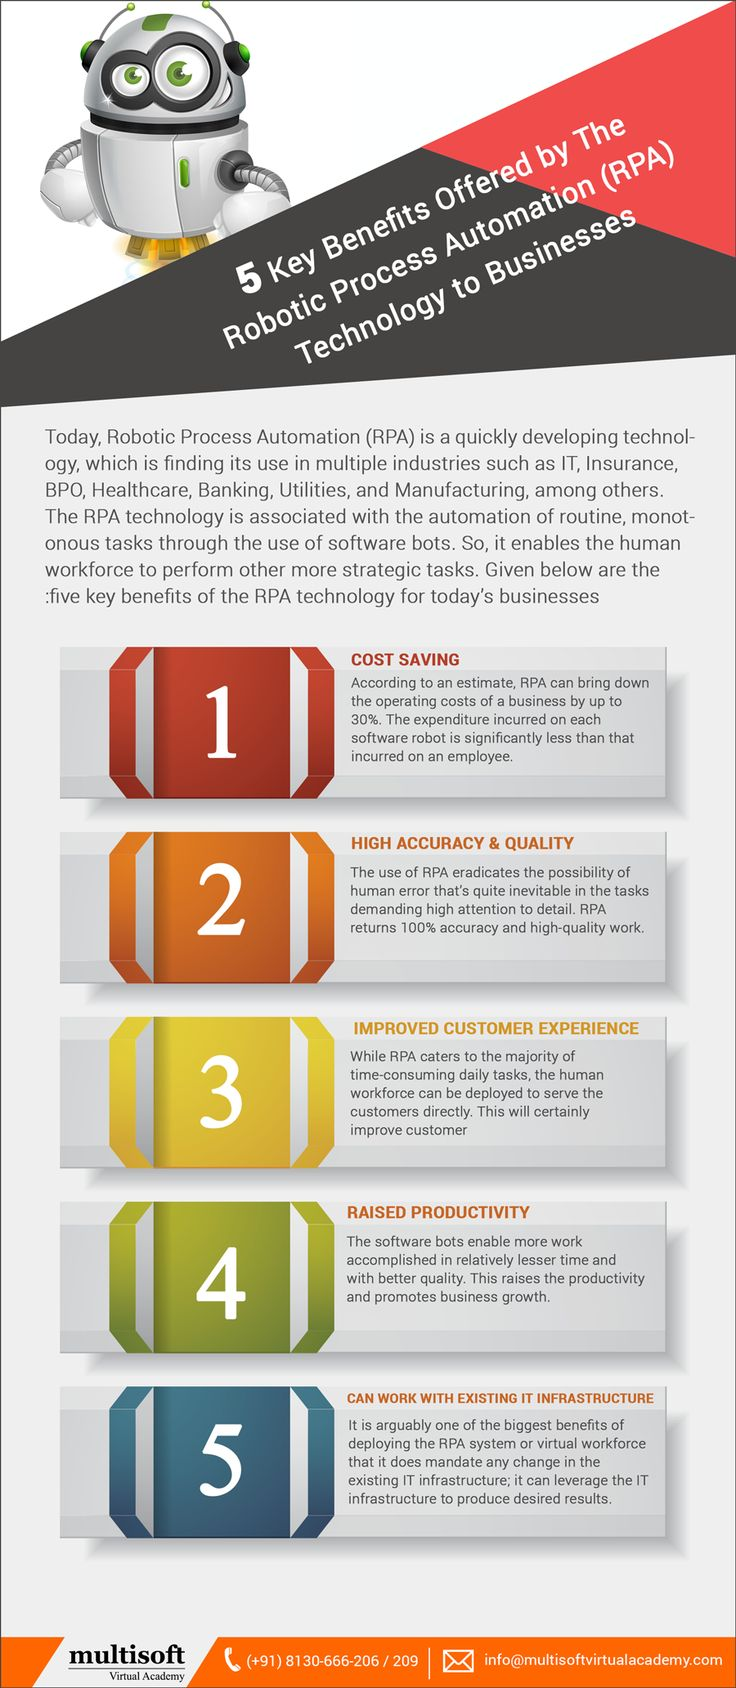 5 Key Benefits Offered by The Robotic Process Automation